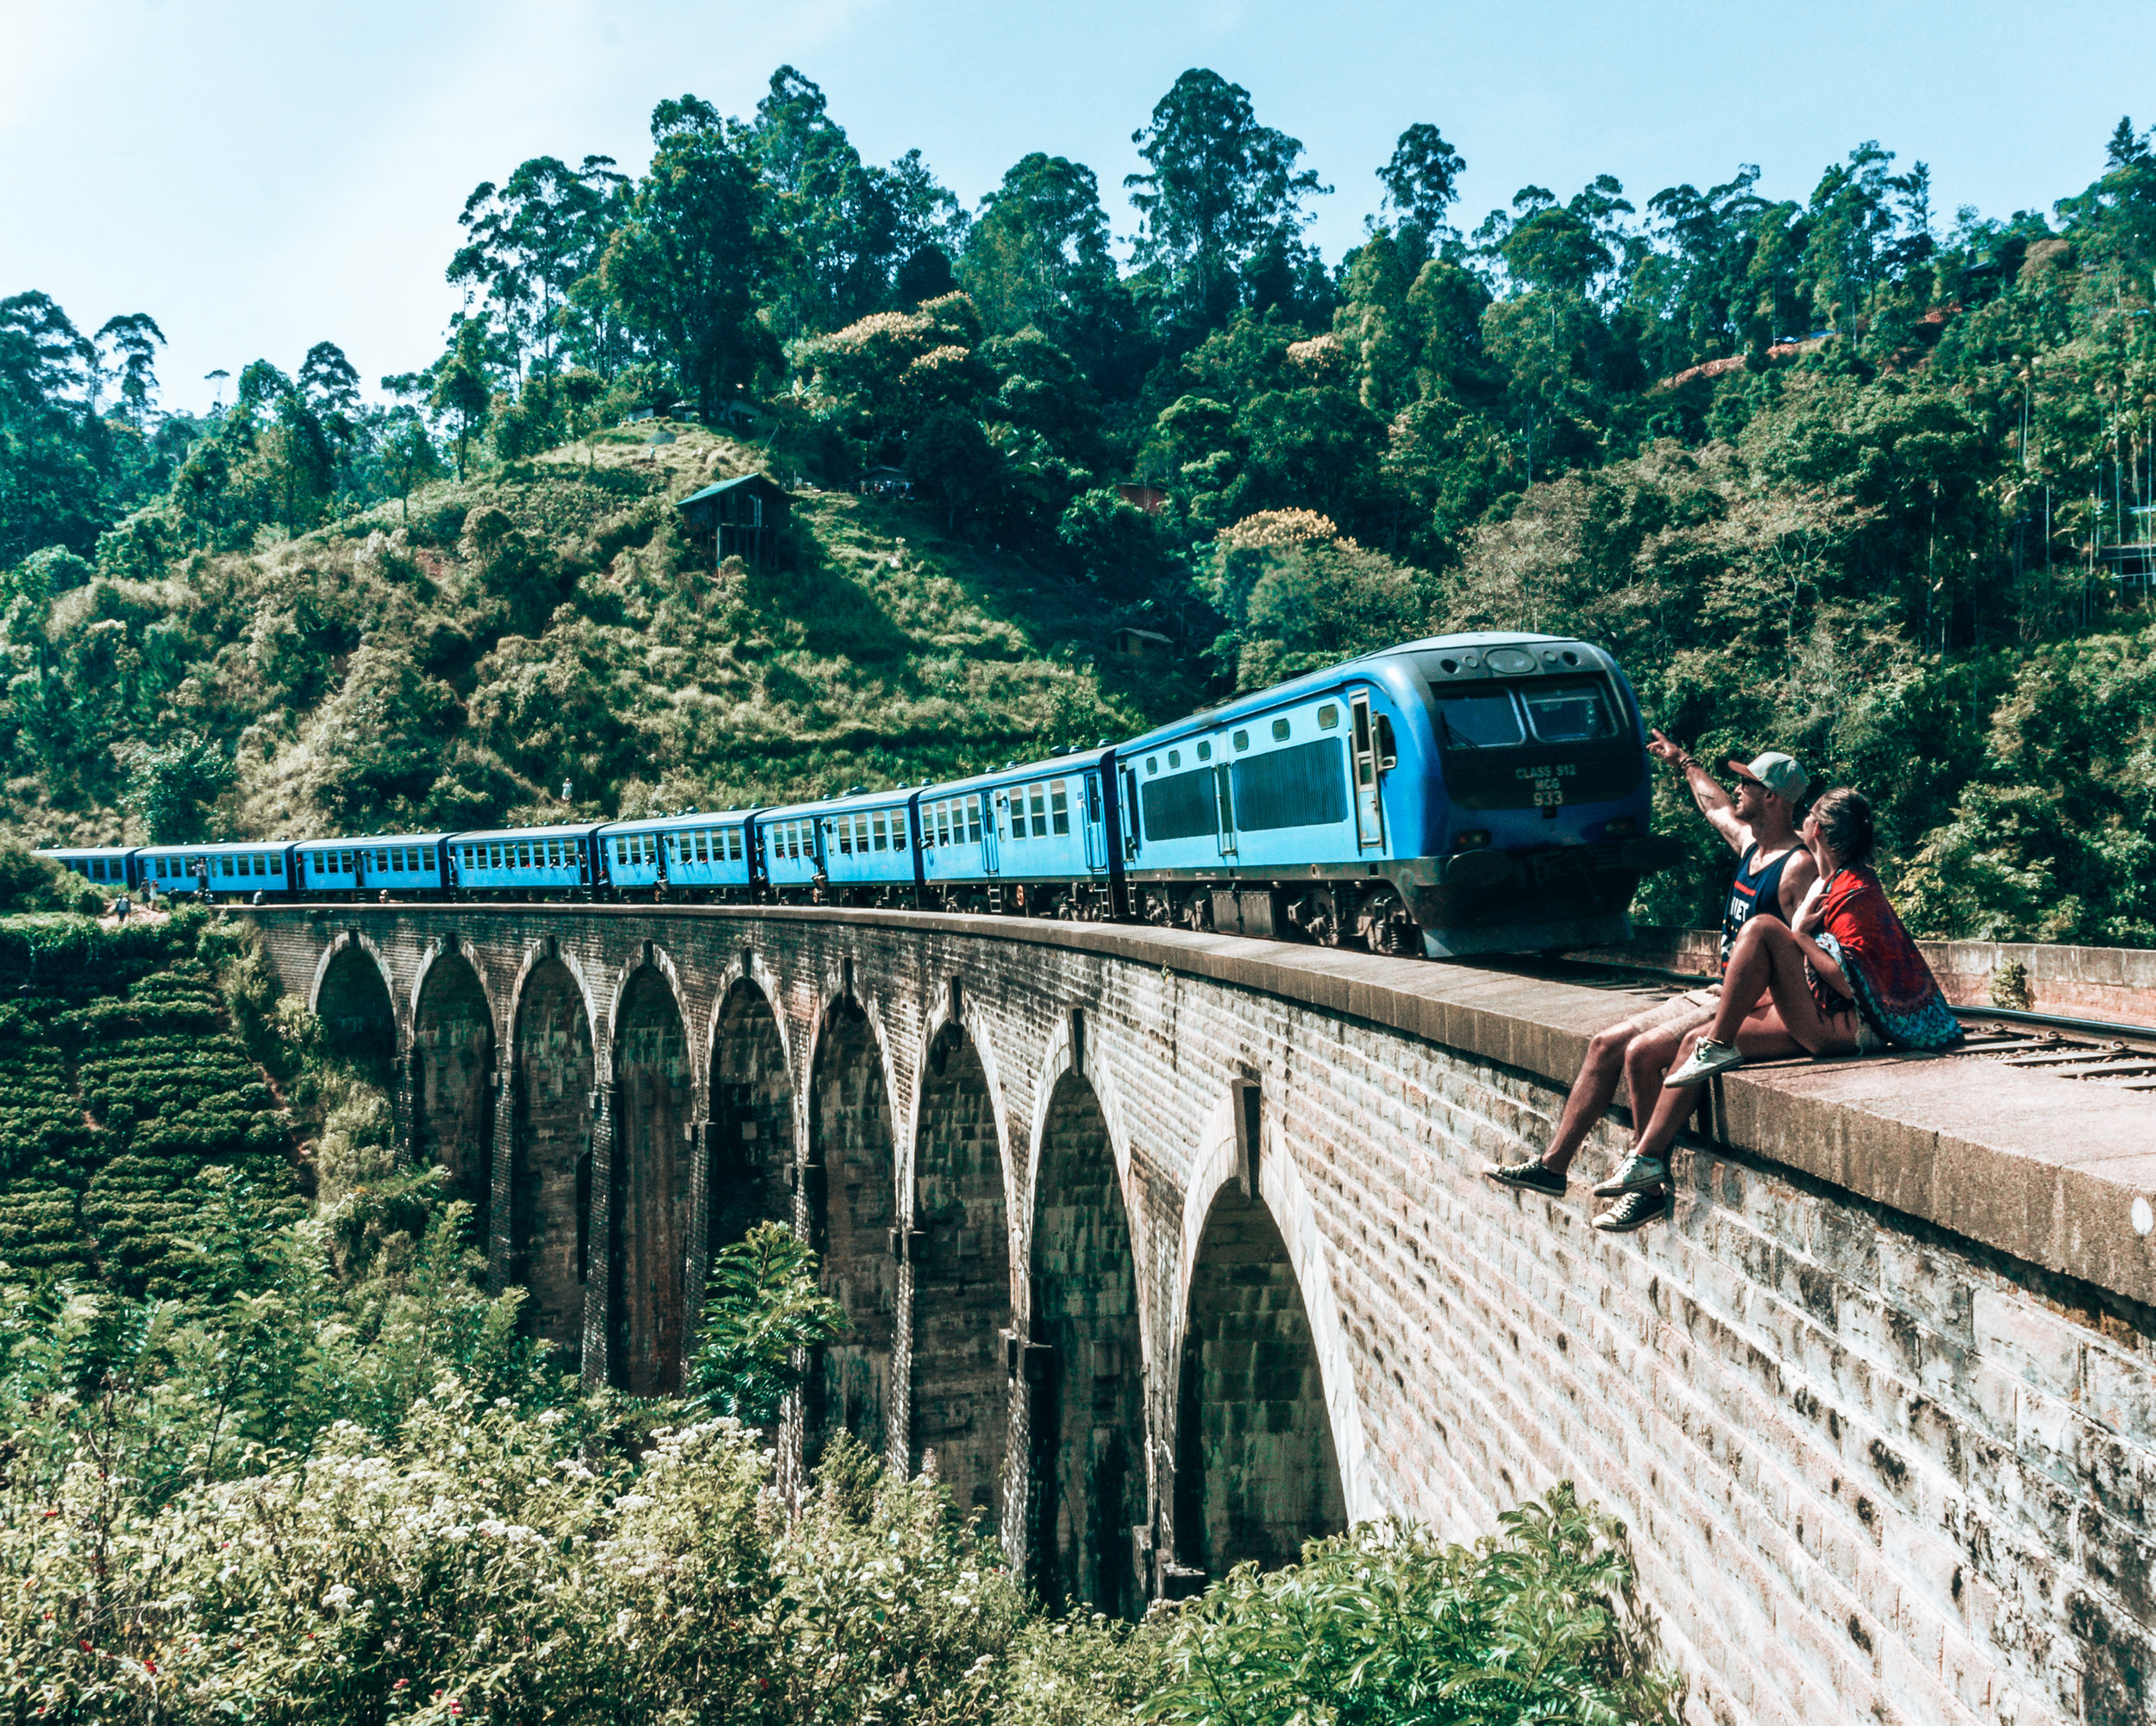 Travel like a local - A guide to traveling in Sri Lanka - Craving Adventure - Ella - Nine Arch Bridge - Train - Couple - Blog